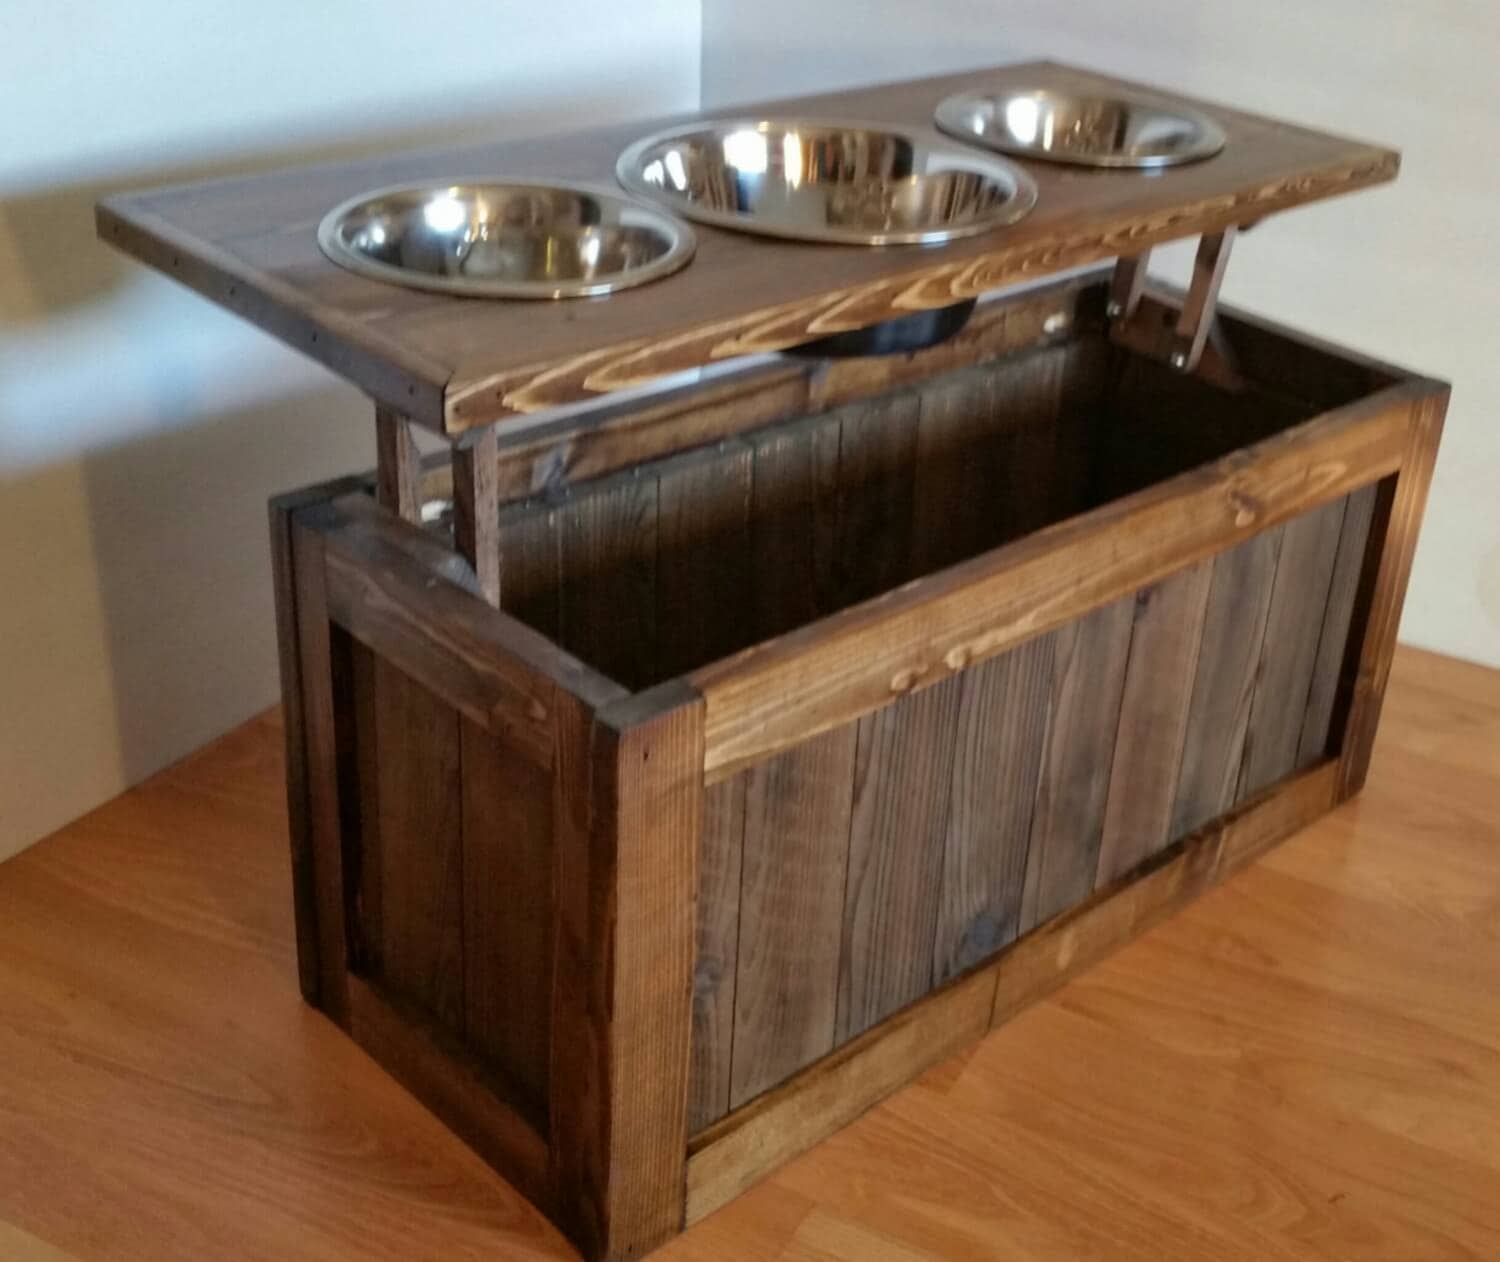 woodworks dog licensees stand feeder tall three made wooden bowl the food water mm bowls campaign and raised fabian elevated australian